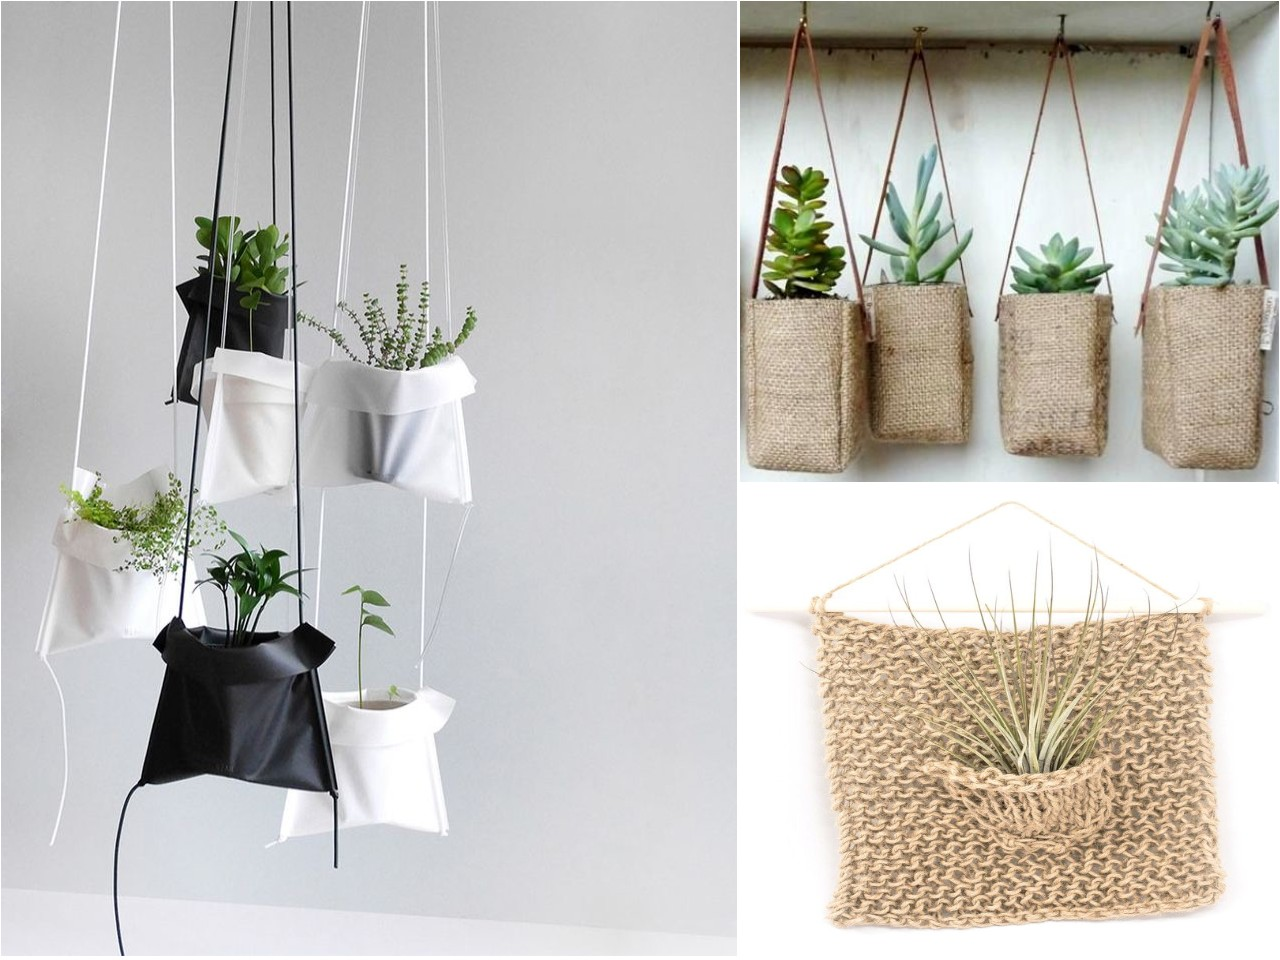 10 ideas de decoraci n con plantas colgantes - Estanterias originales de pared ...